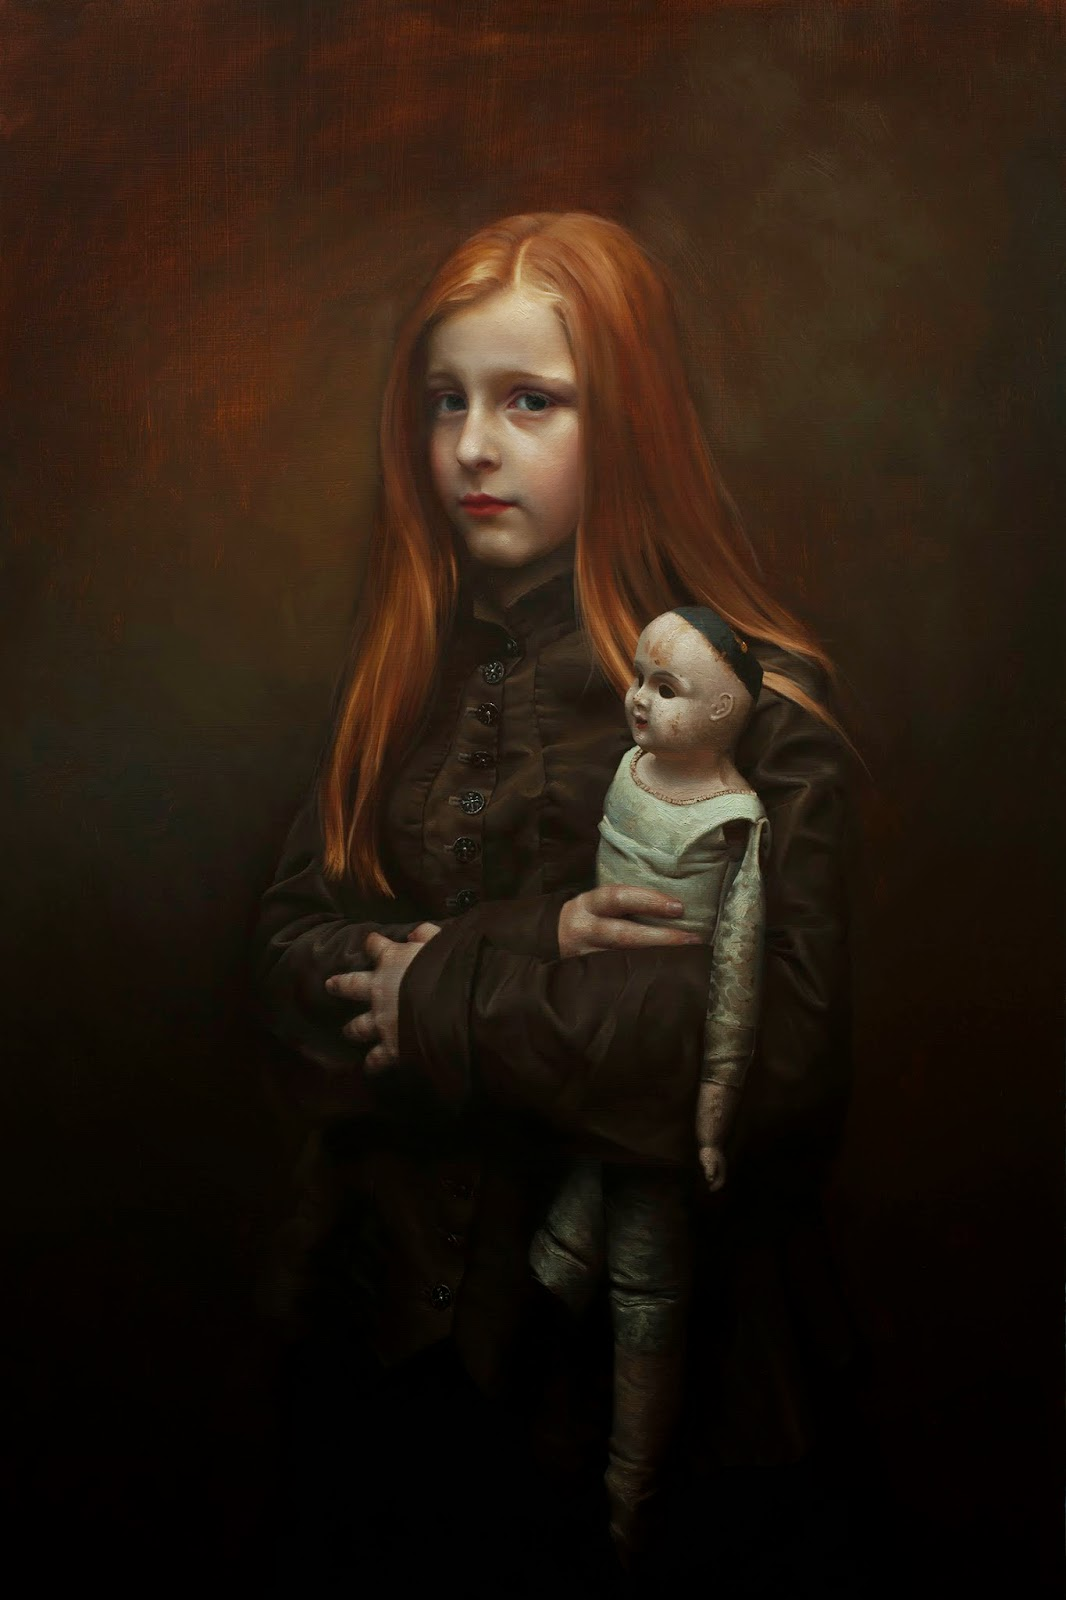 Poppet, Katherine Stone, 2015, oil on panel, 20 x 30 inches